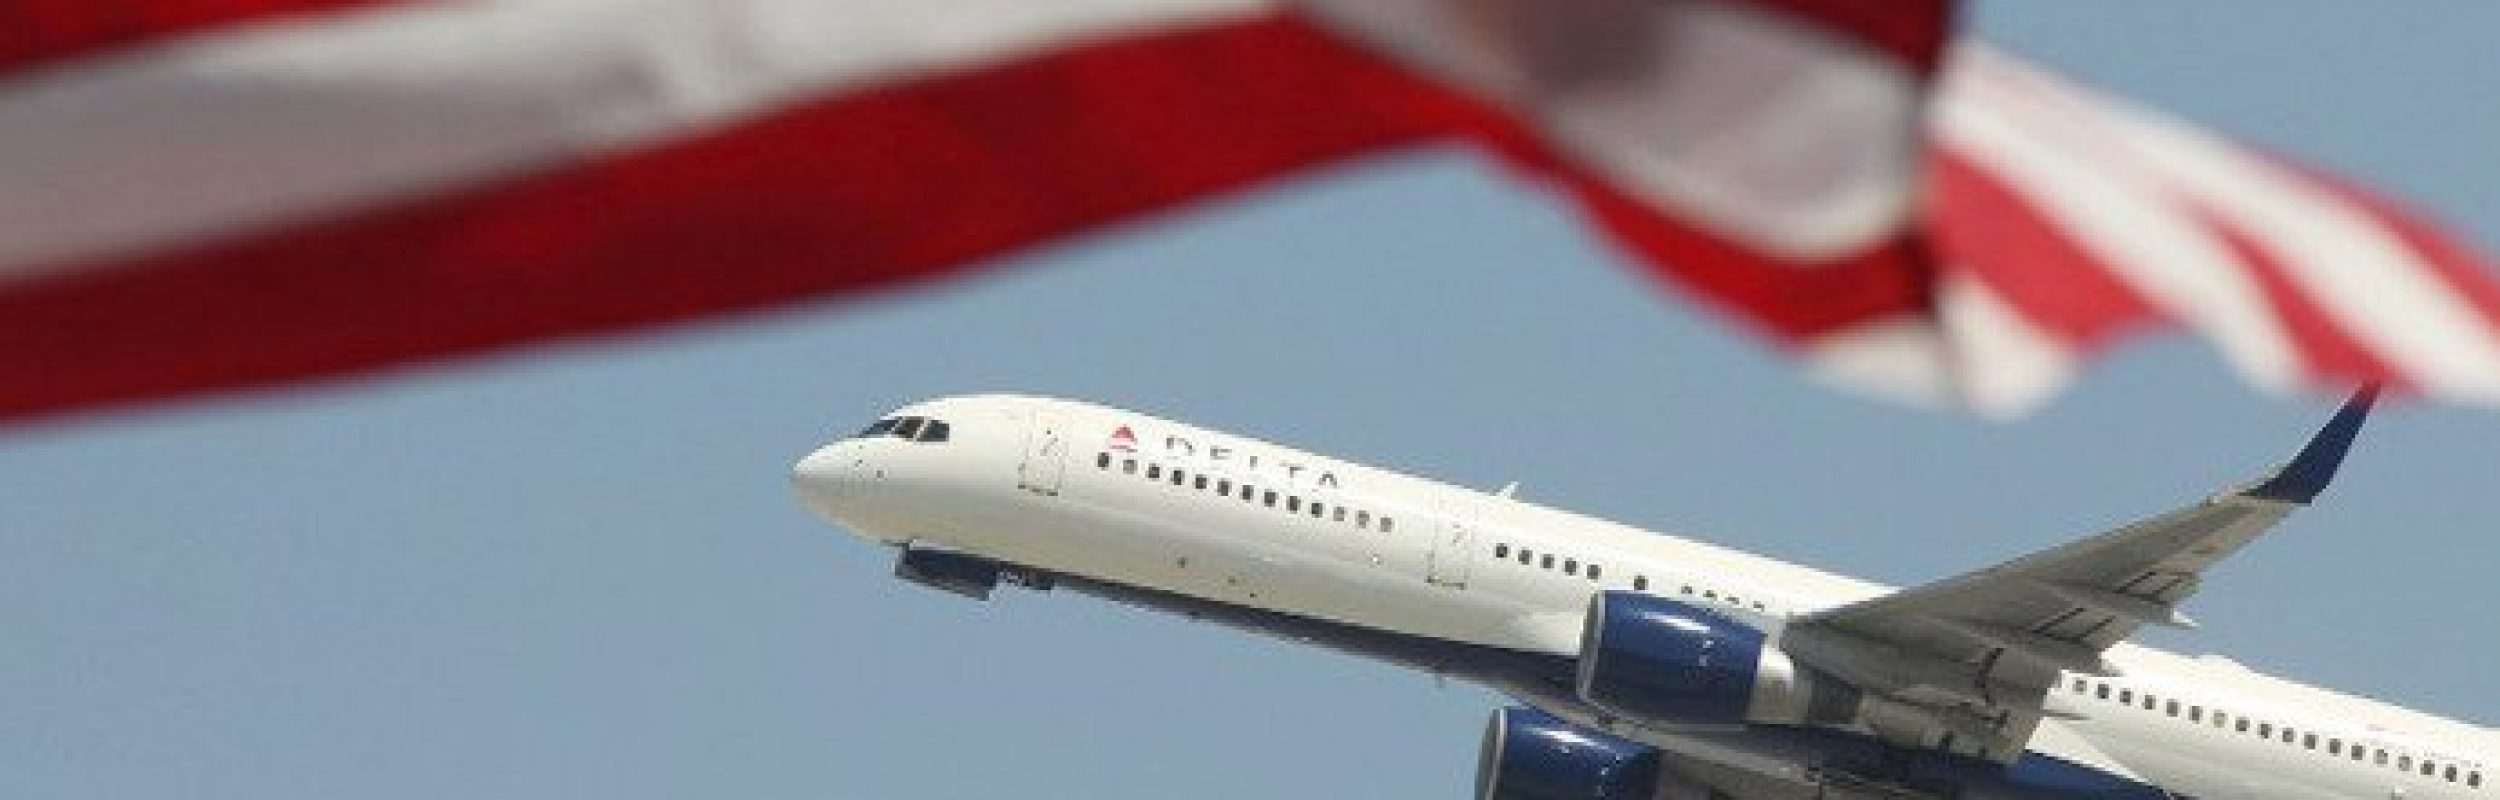 Voli low cost per gli Usa: Norwegian Air vola a soli 69 euro.